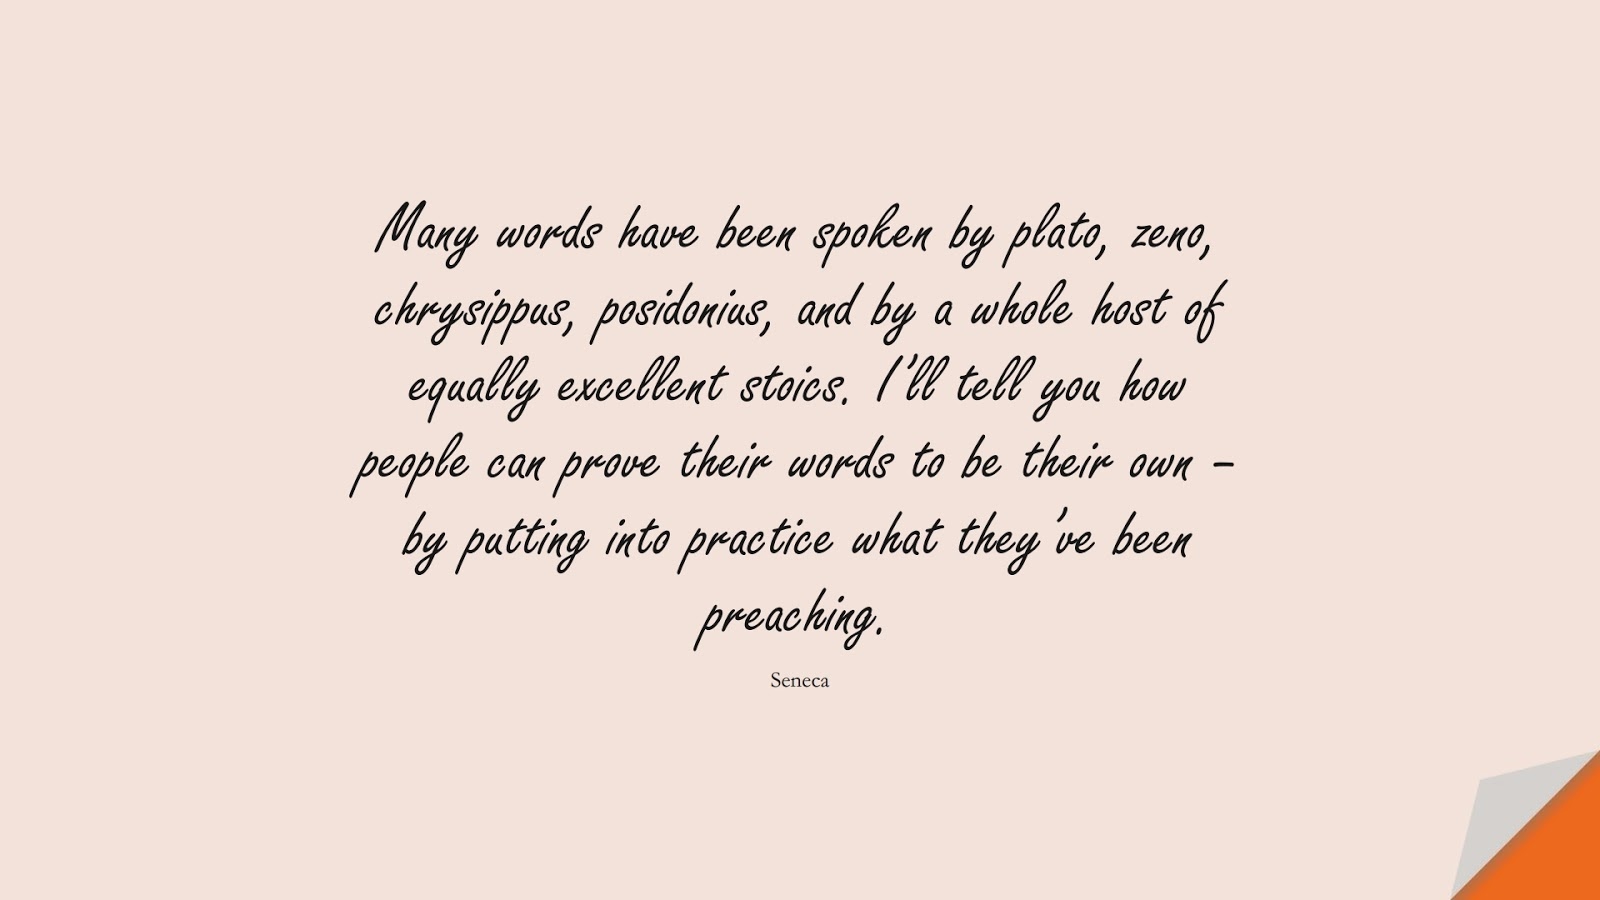 Many words have been spoken by plato, zeno, chrysippus, posidonius, and by a whole host of equally excellent stoics. I'll tell you how people can prove their words to be their own – by putting into practice what they've been preaching. (Seneca);  #CharacterQuotes